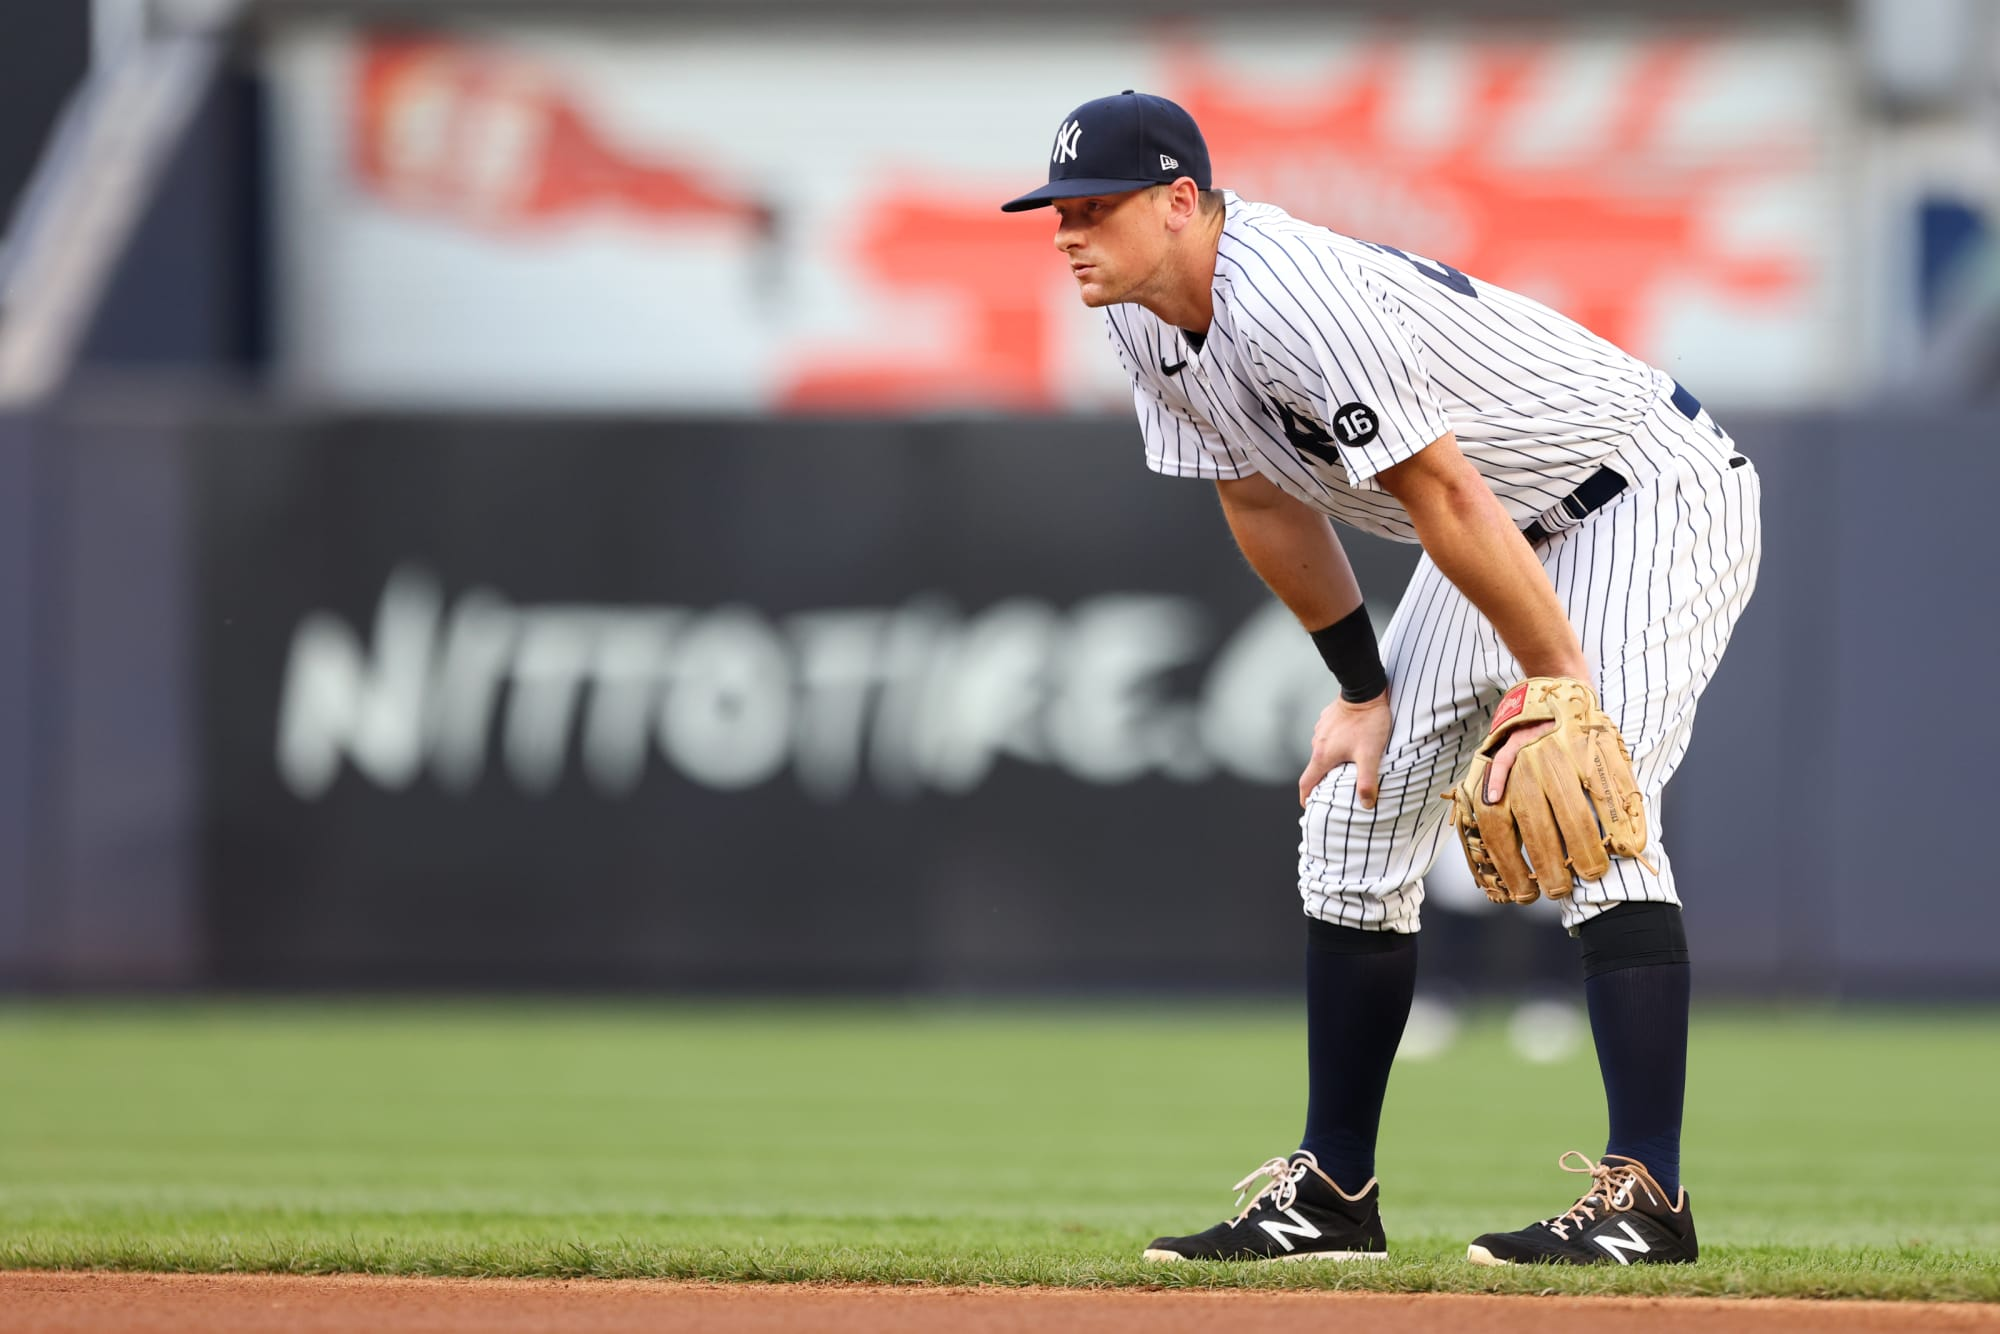 Yankees: MLB insider answers wild mailbag question about DJ LeMahieu trade